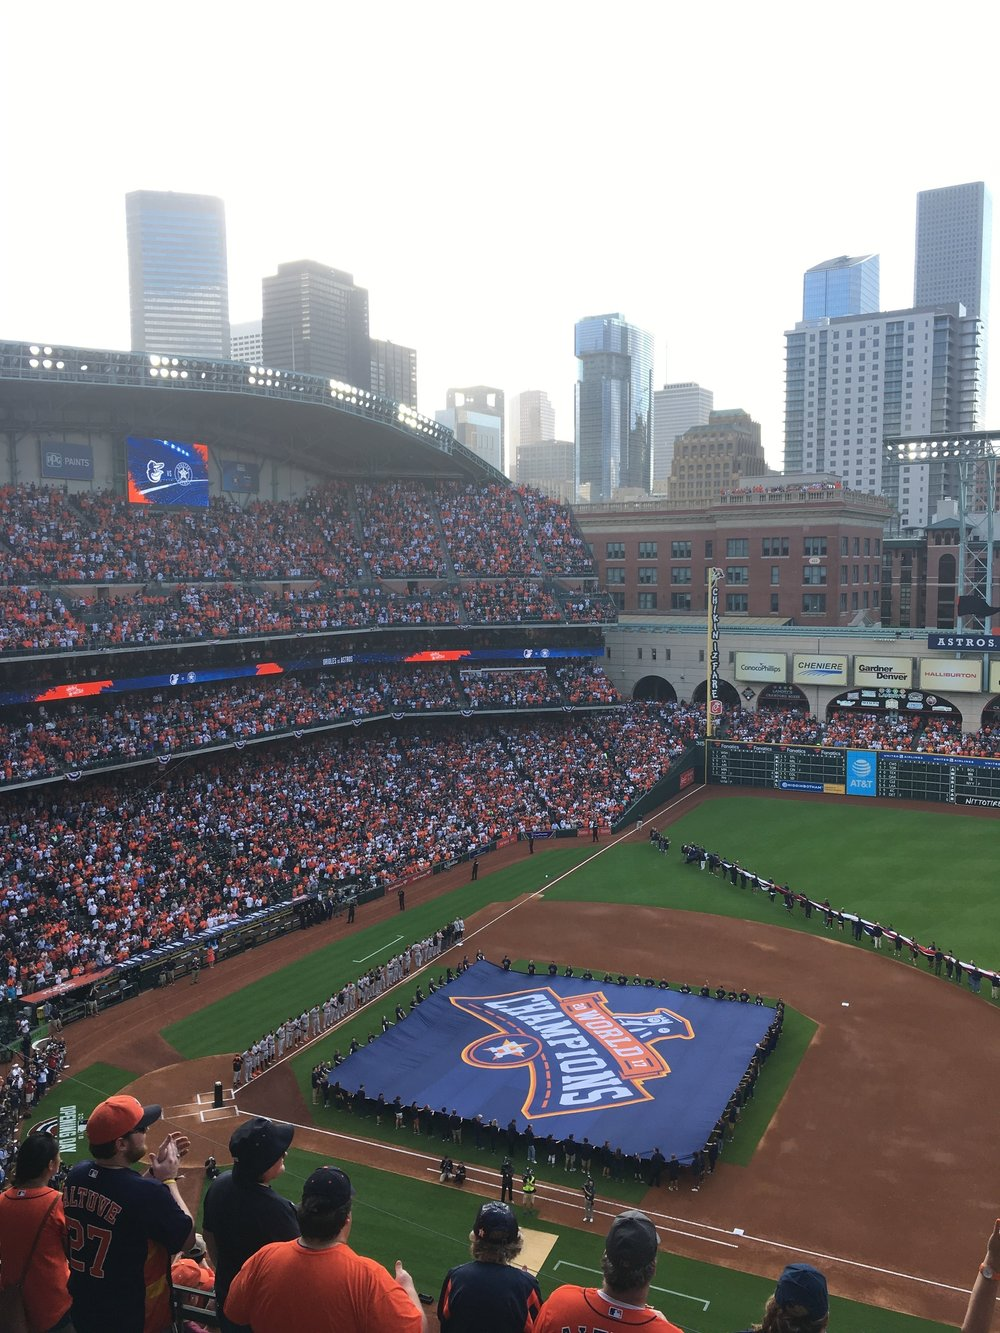 4 Insperity Club Tickets for June 5, Astros vs Mariners game